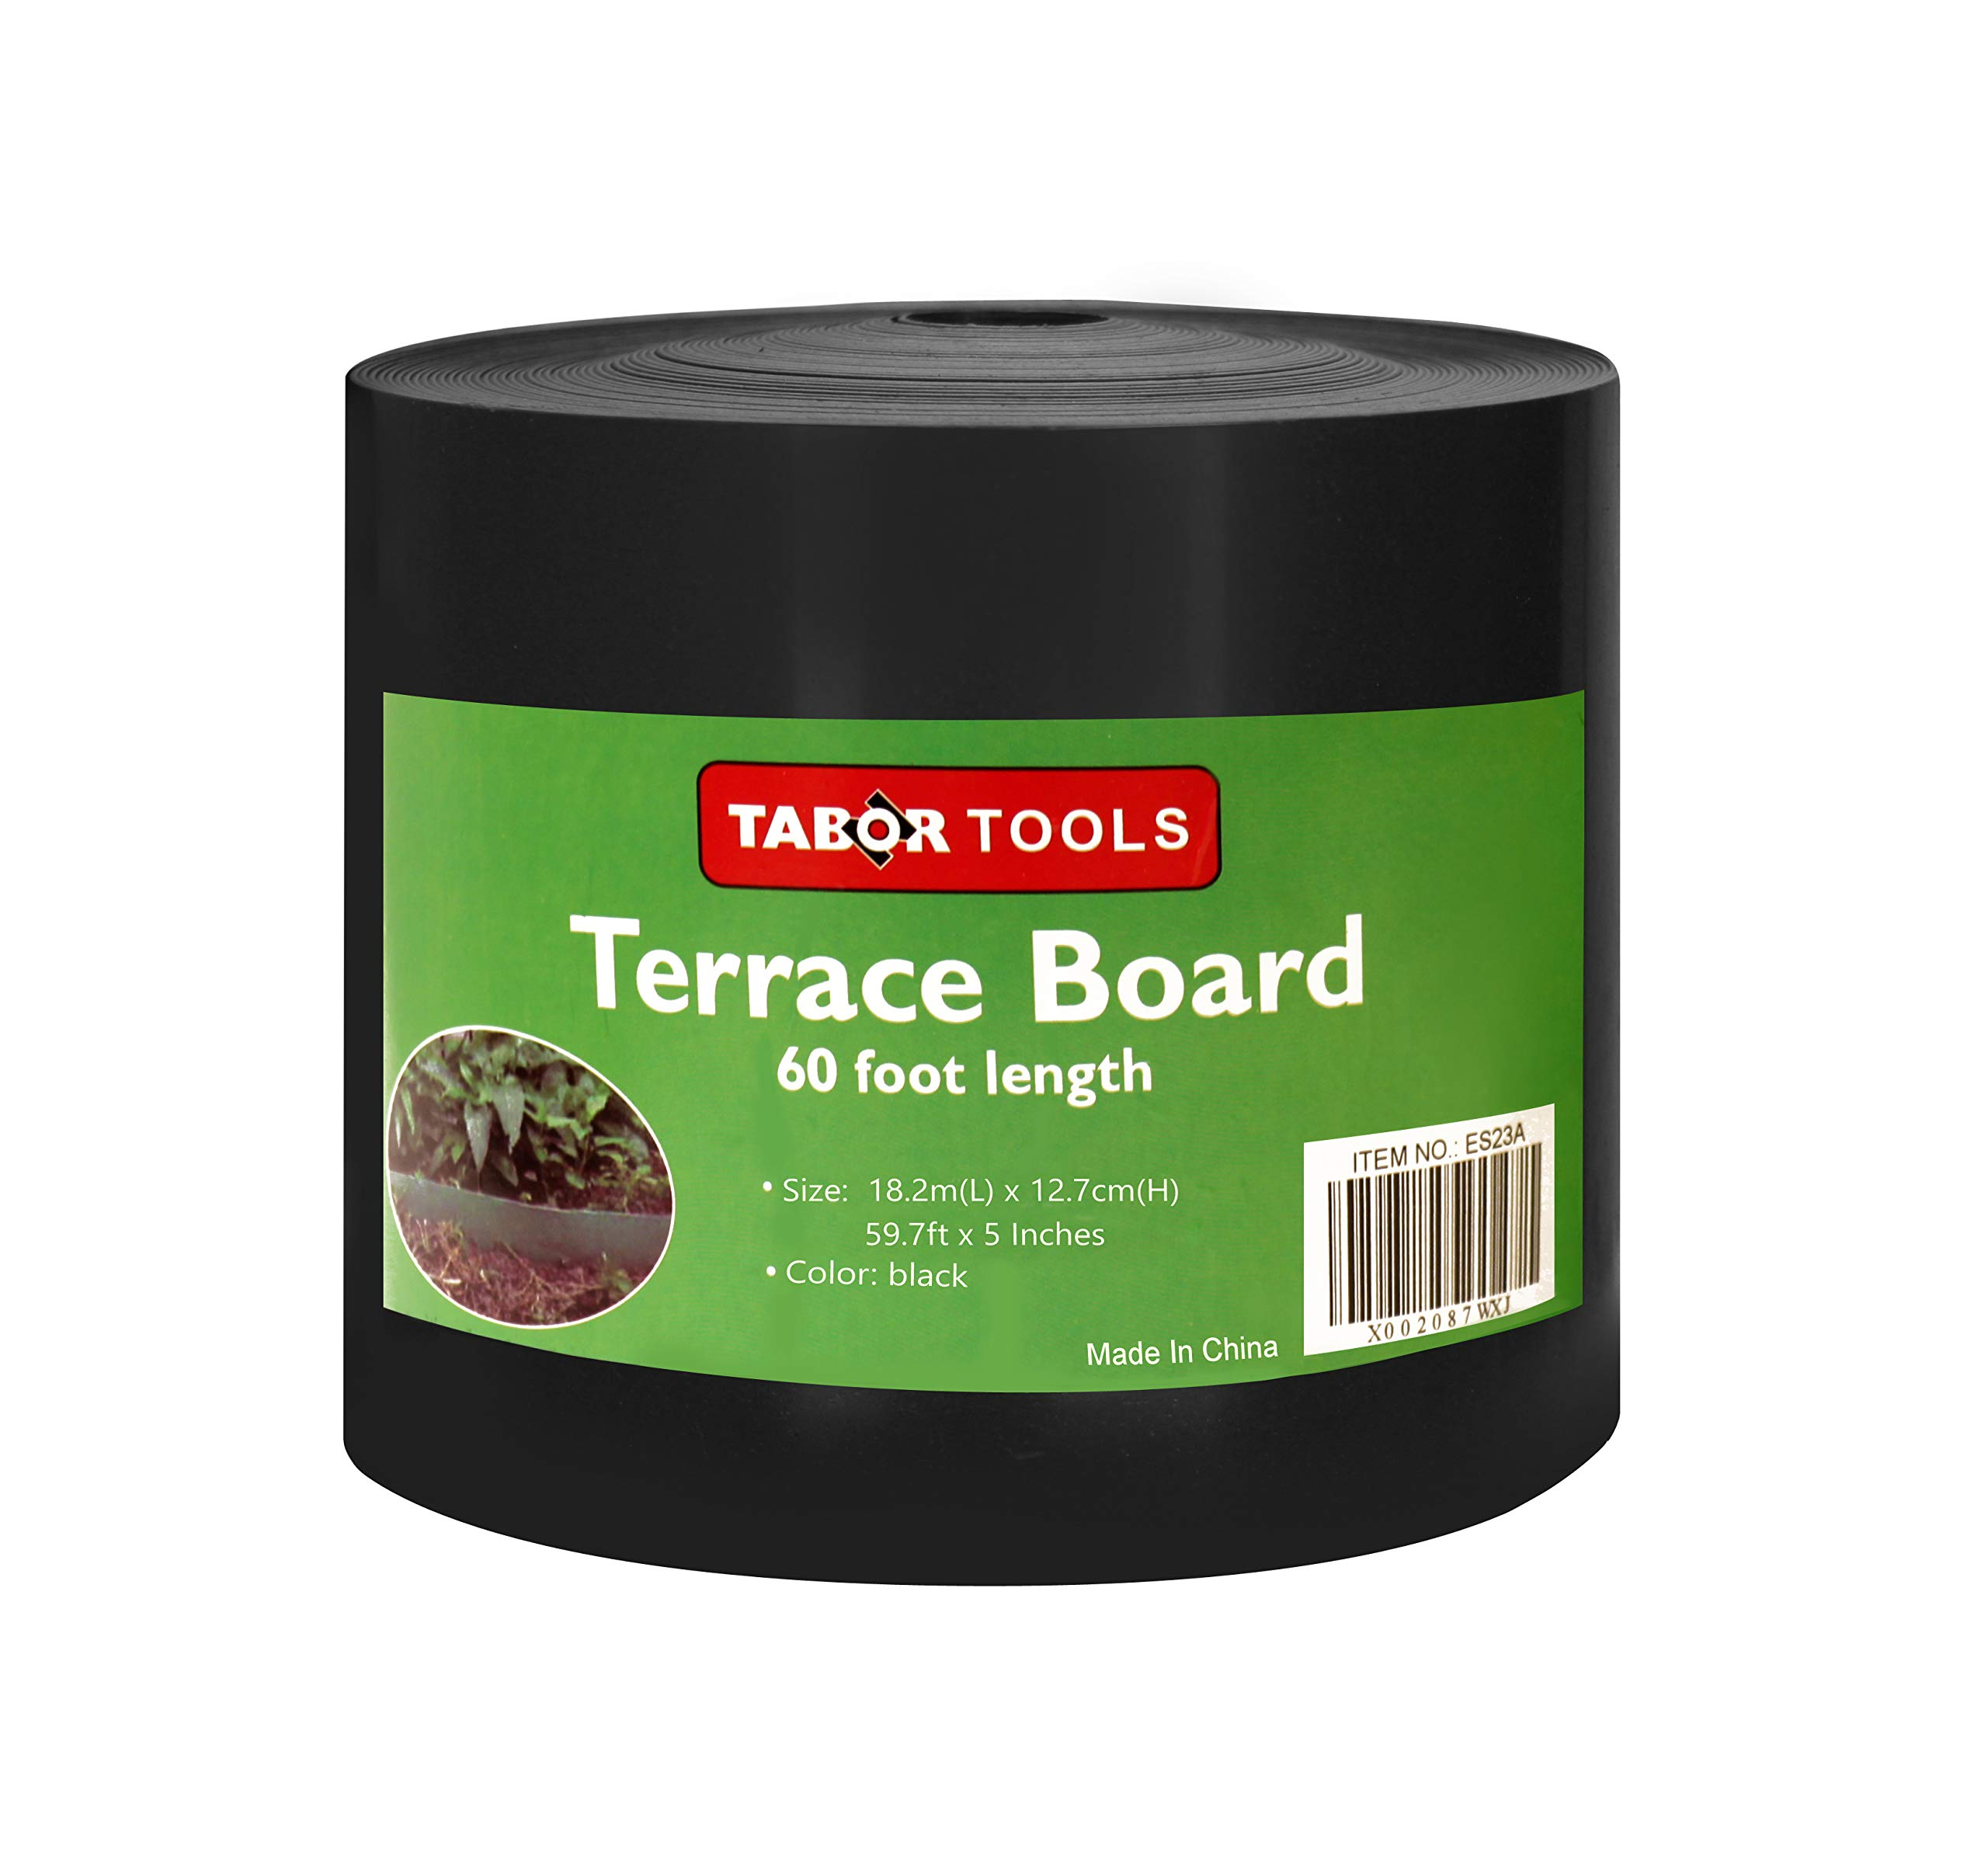 TABOR TOOLS Terrace Board, Landscape Edging Coil, 1/25 Inch Thick, 5 Inch High. ES24. (60 Feet, Black)